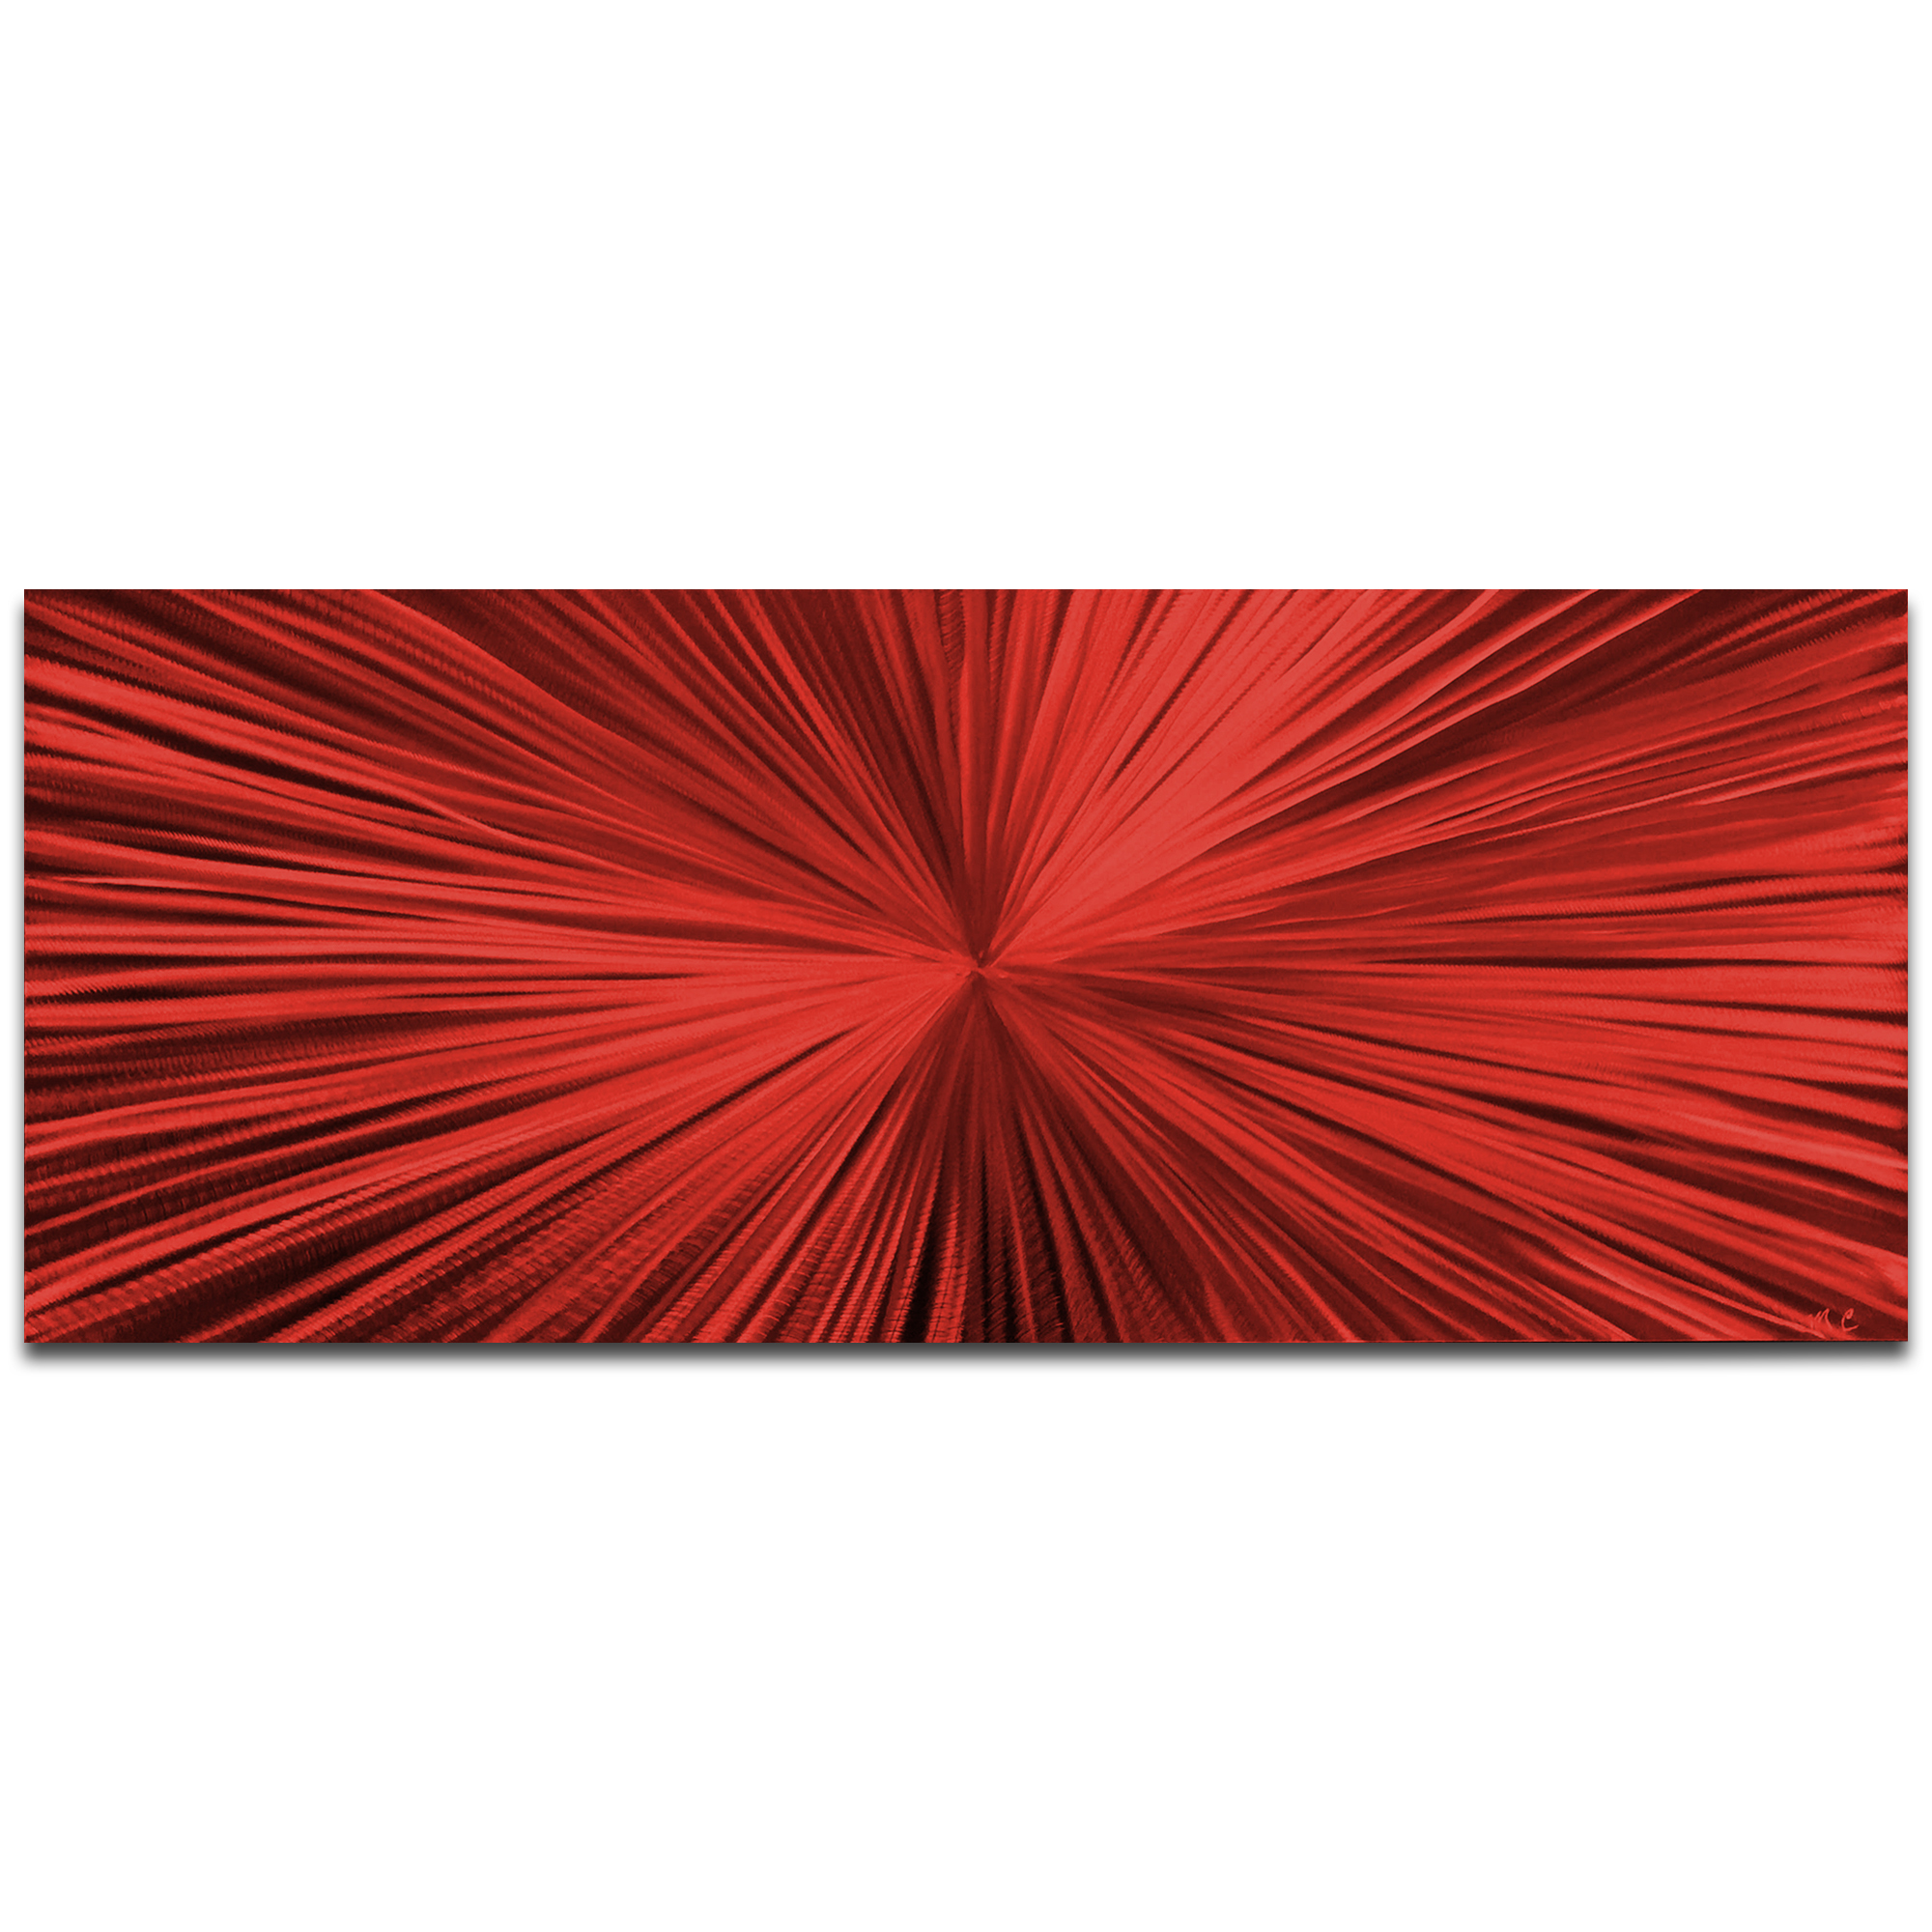 Helena Martin 'Starburst Red' 60in x 24in Original Abstract Art on Ground and Painted Metal